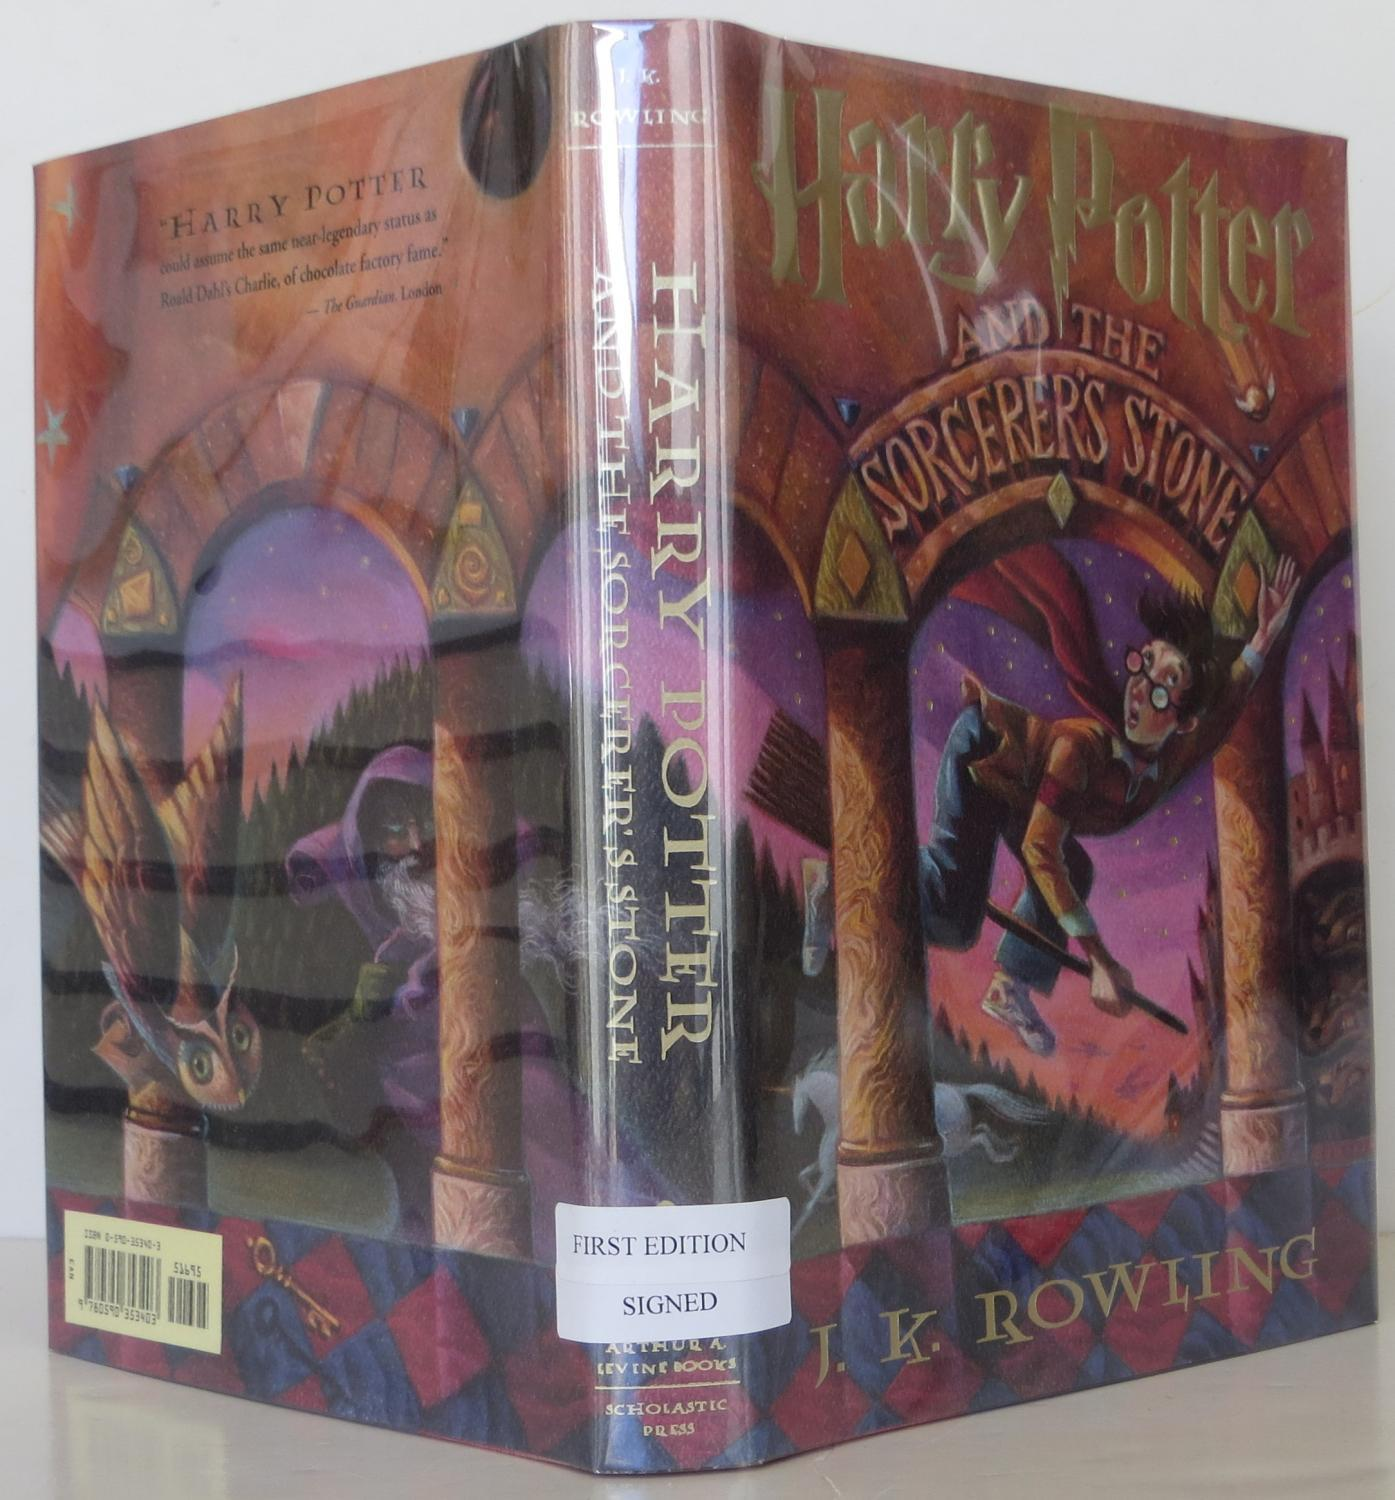 essay questions for harry potter and the sorcerers stone Comprehension questions for harry potter harry potter and the sorcerers stone rise to reading, harry potter and the sorcerers stone this entry was posted in comprehension questions, harry potter and tagged.